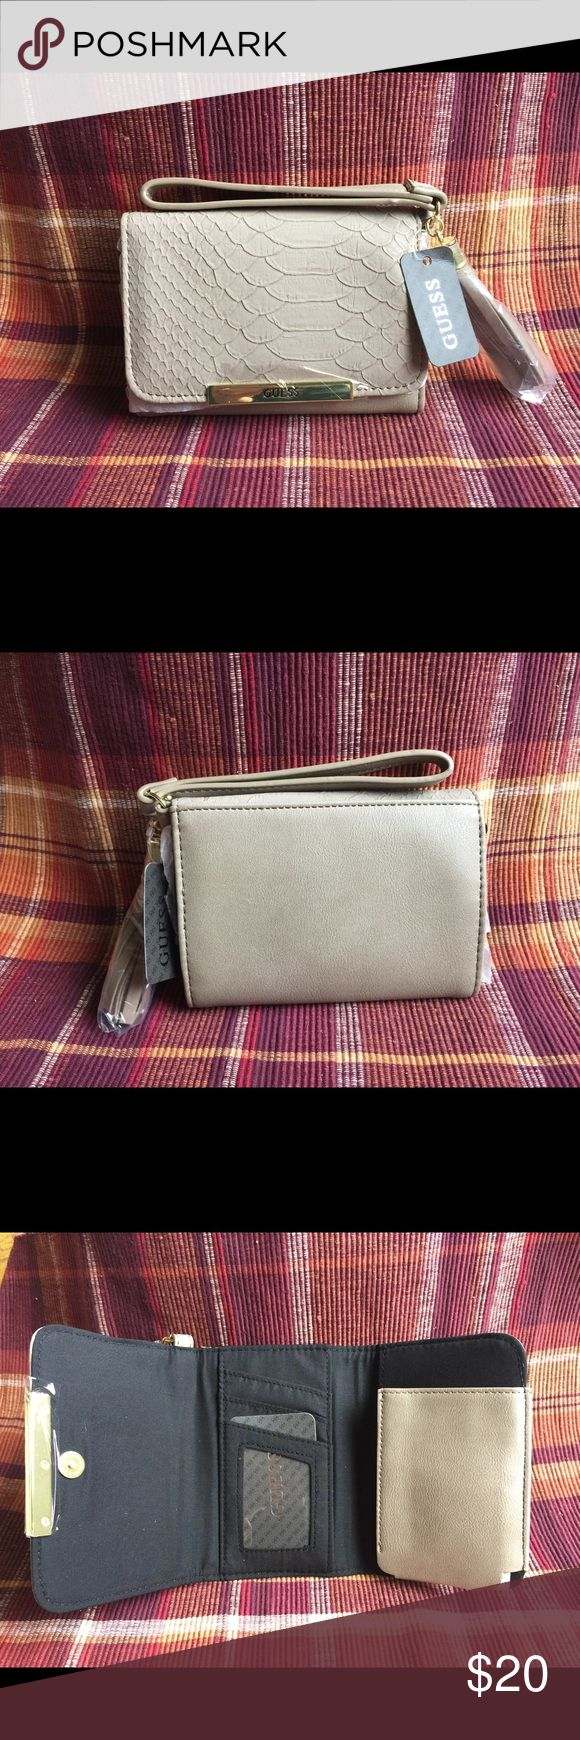 Guess wallet NWT guess wallet with cellphone pocket its fit for iphone 6 Guess Bags Wallets